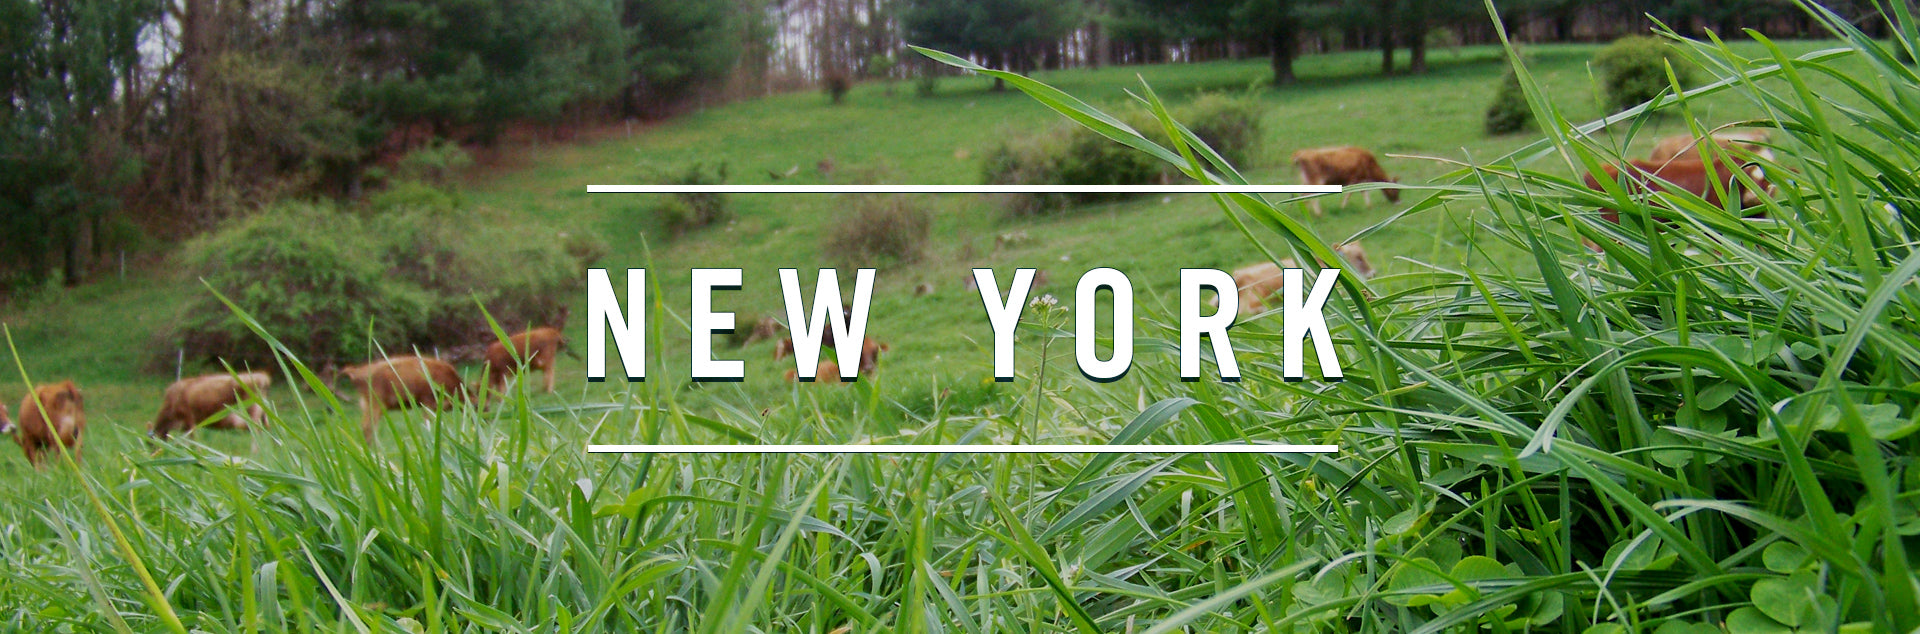 New York Farm